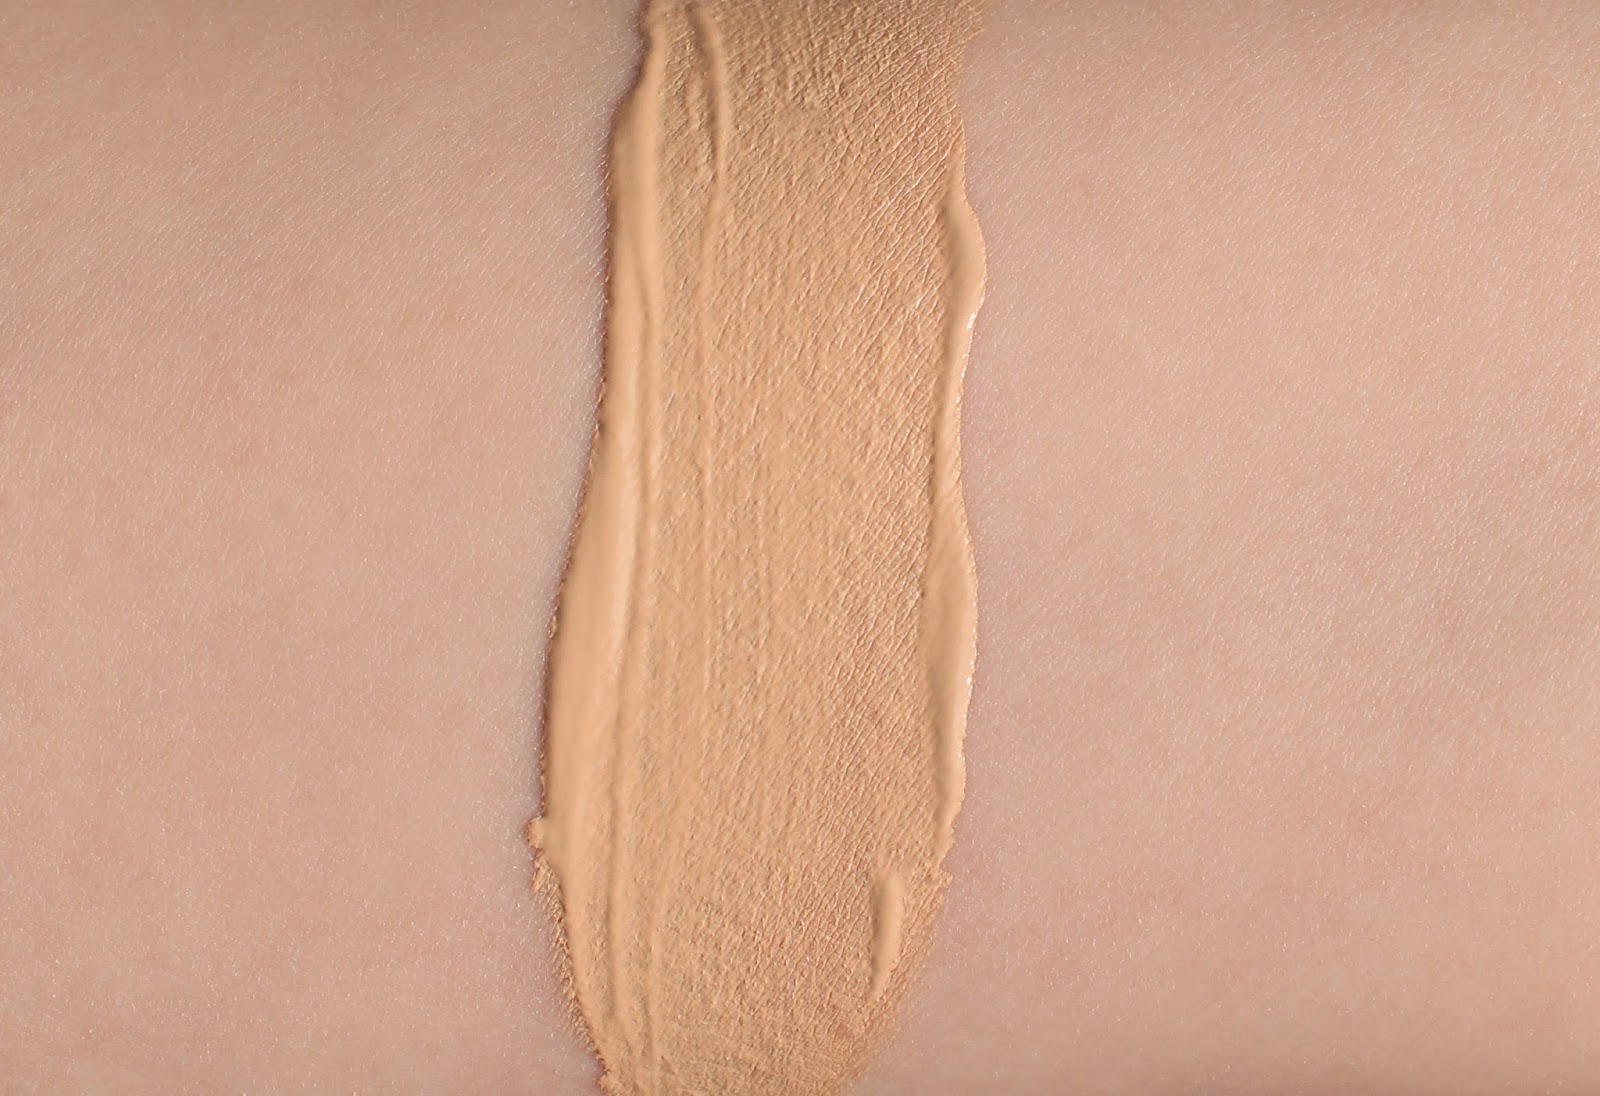 chanel les beiges healthy glow foundation no 20 review another kind of beauty blog f. Black Bedroom Furniture Sets. Home Design Ideas